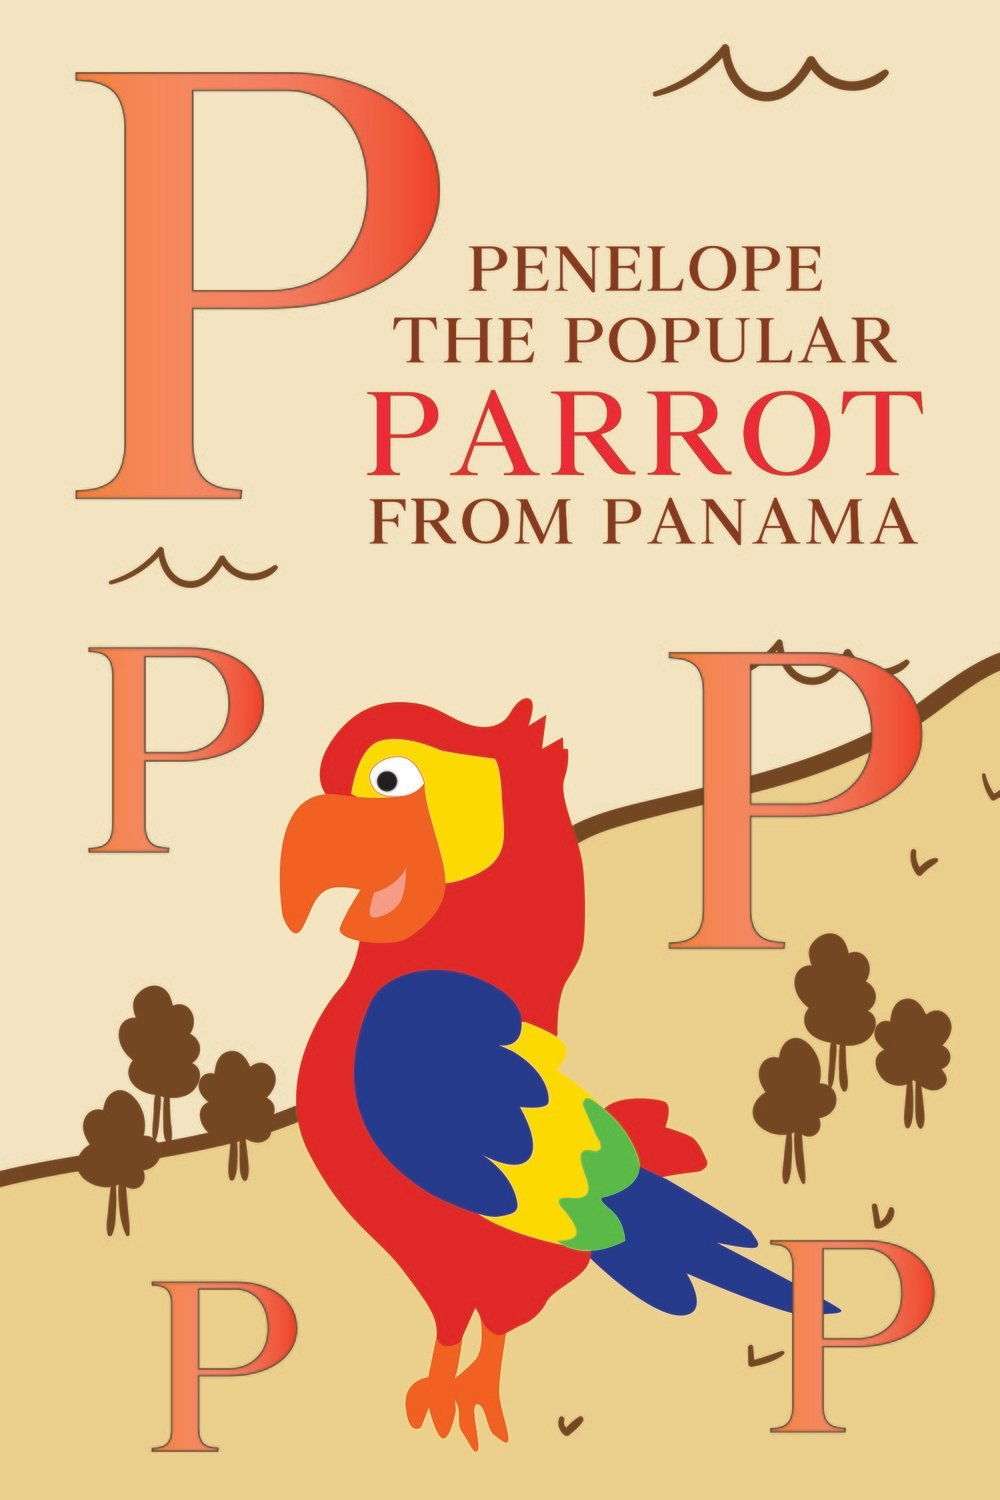 Penelope The Popular PARROT From PANAMA Poster